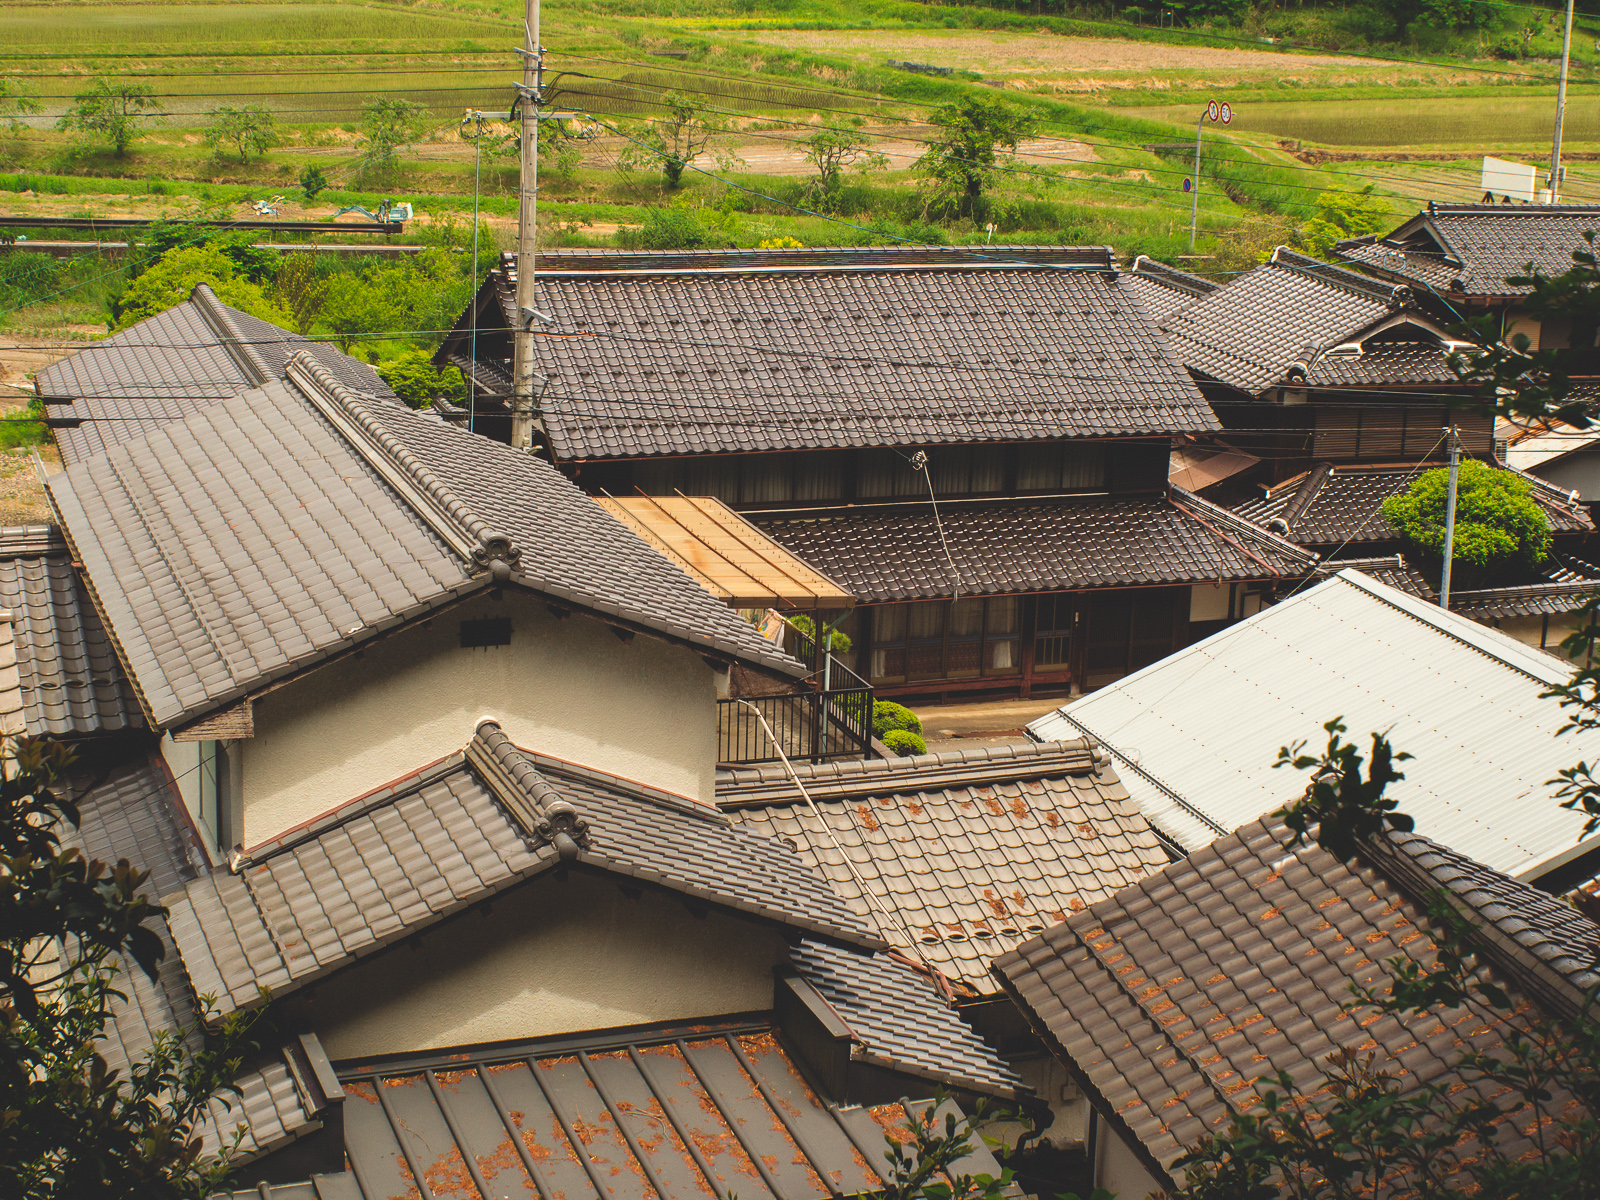 Traditional Japanese architecture in the rural countryside